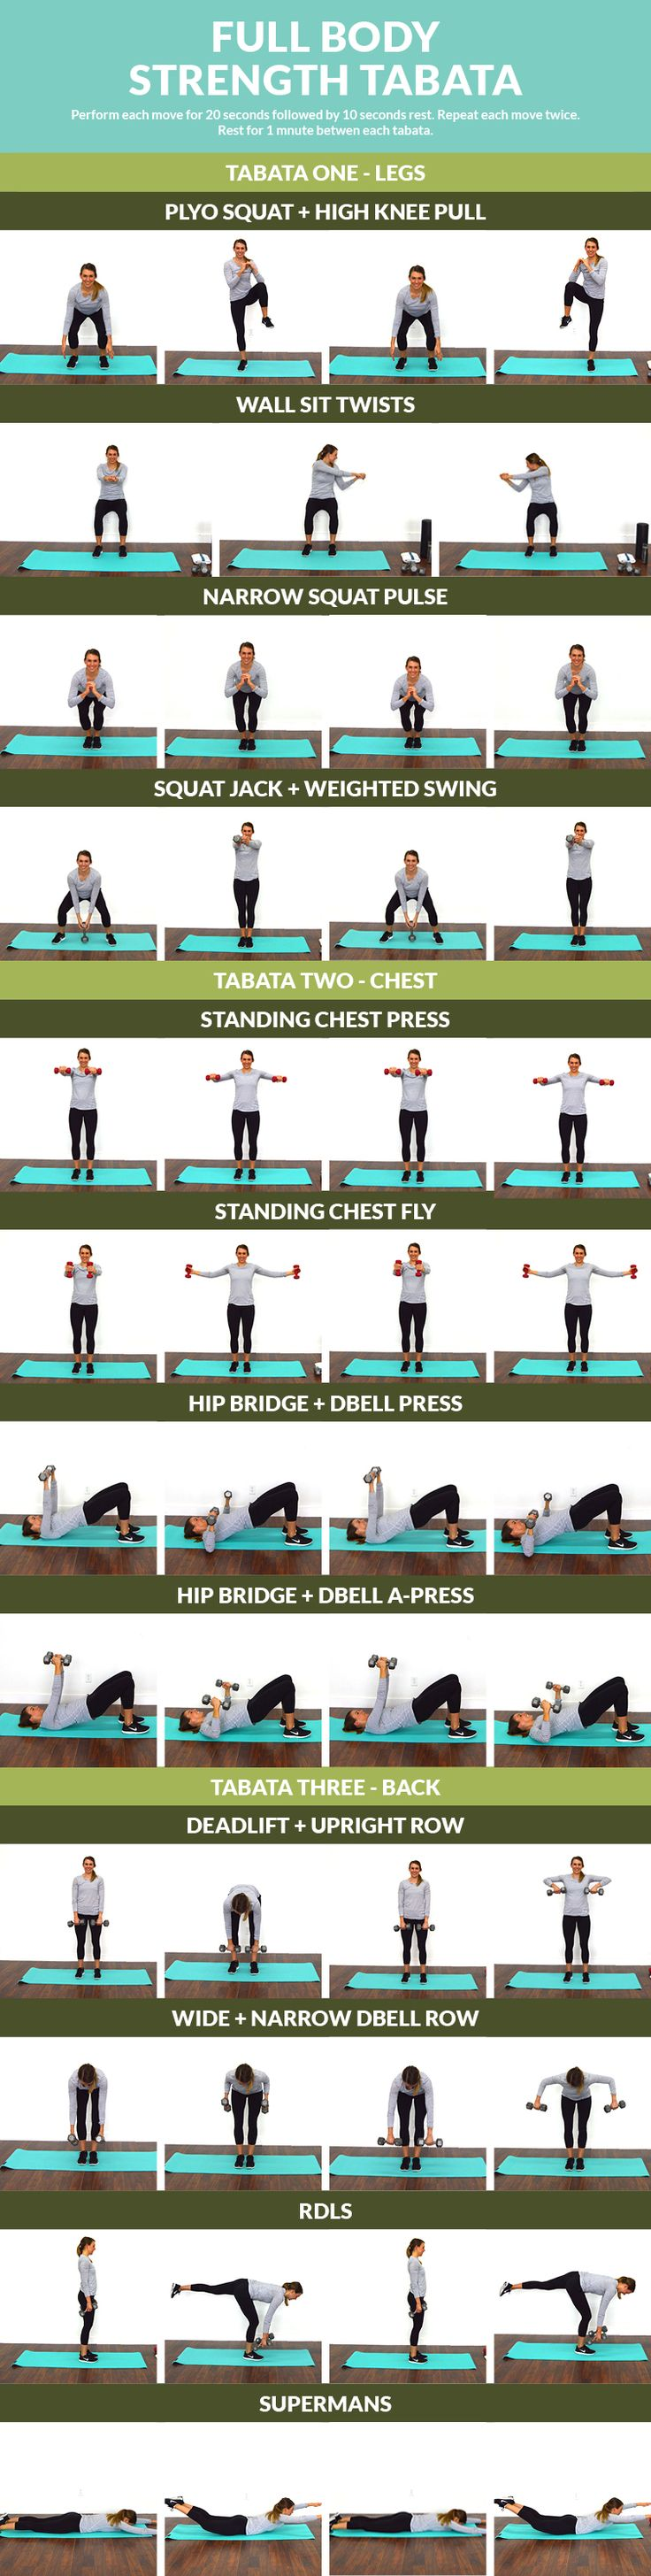 Full Body Strength Tabata - Tone your body with this 15-minute core muscles strength tabata.